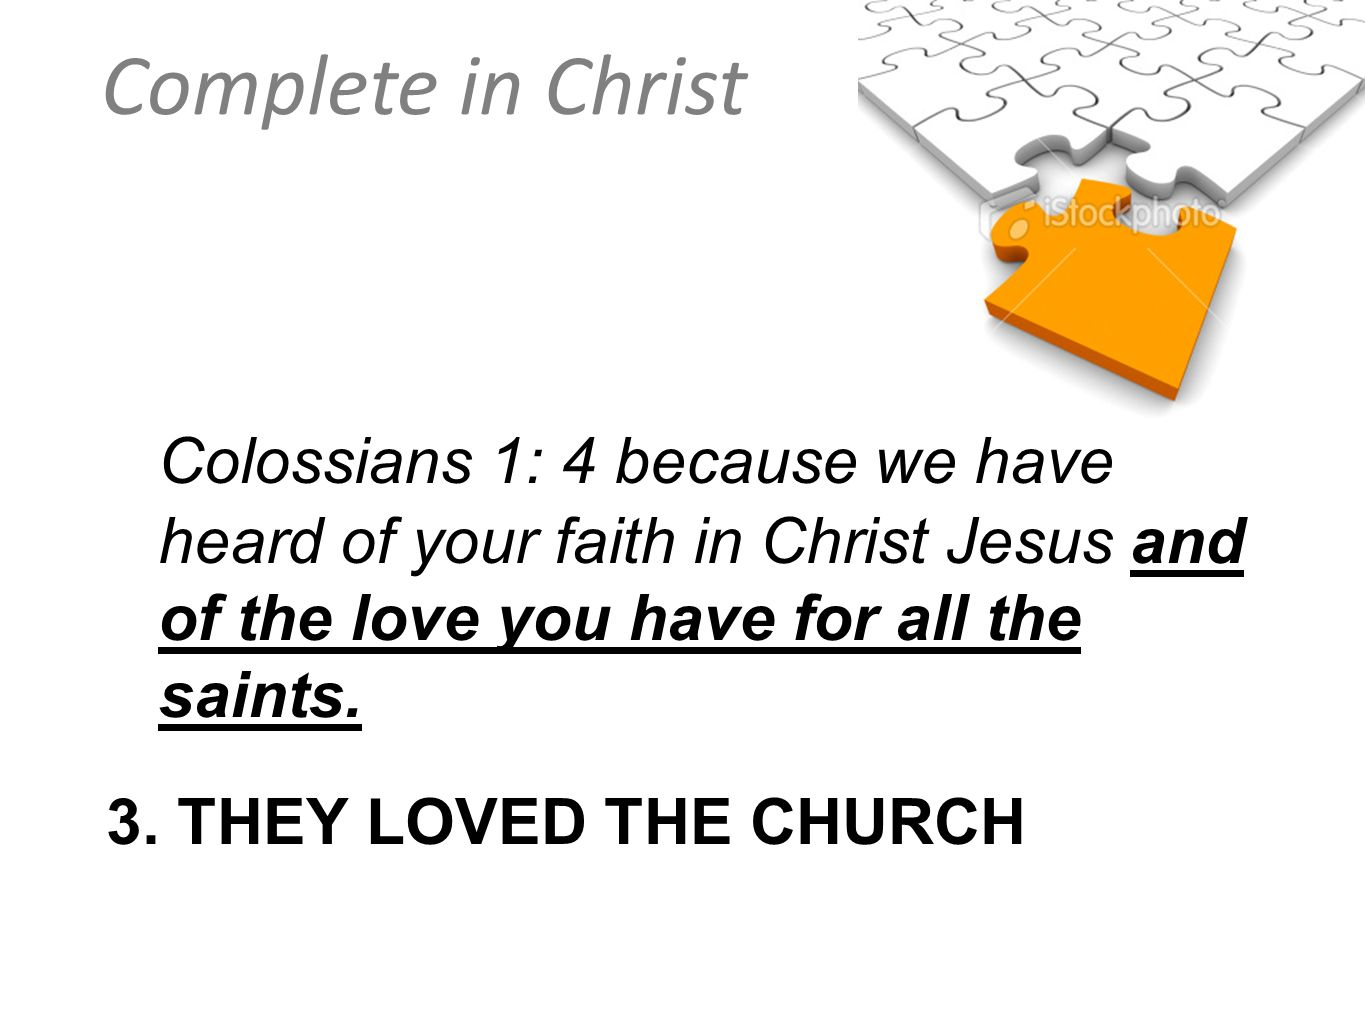 Colossians 1: 4 because we have heard of your faith in Christ Jesus and of the love you have for all the saints.